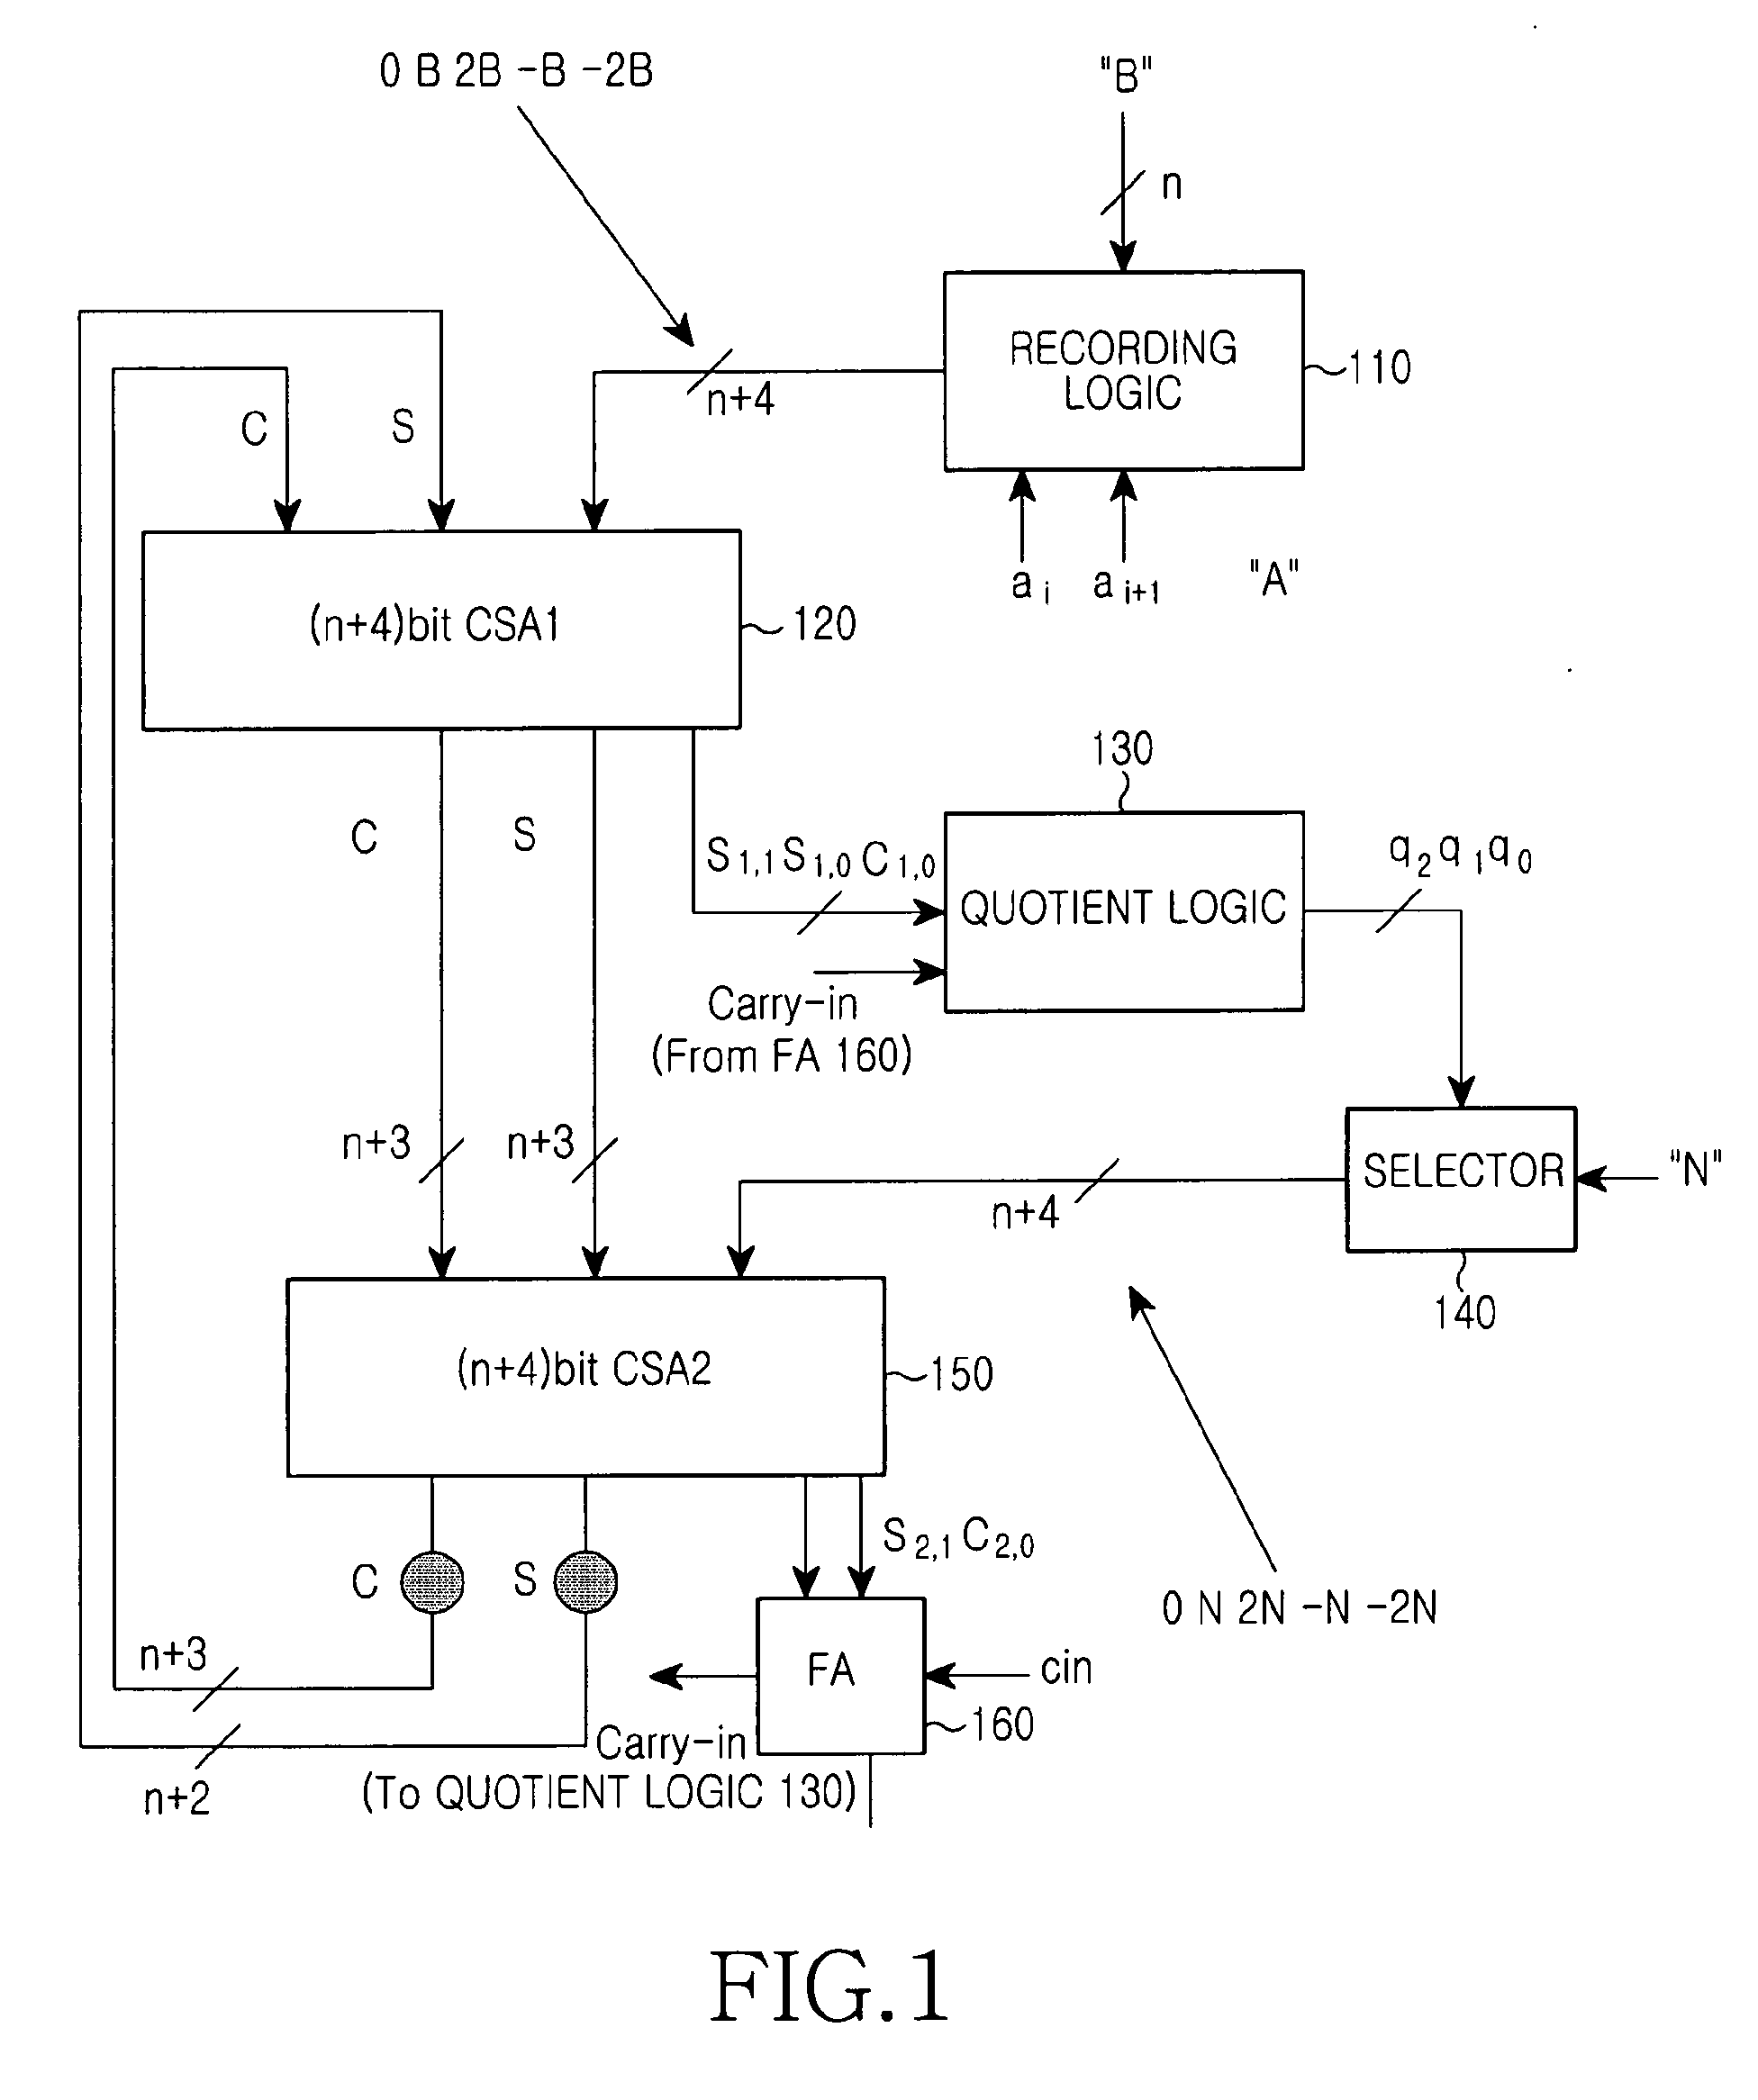 Patent Ep1457875a2 Apparatus And Method For Performing Montgomery Logic Diagram 4 Bit Multiplier Drawing